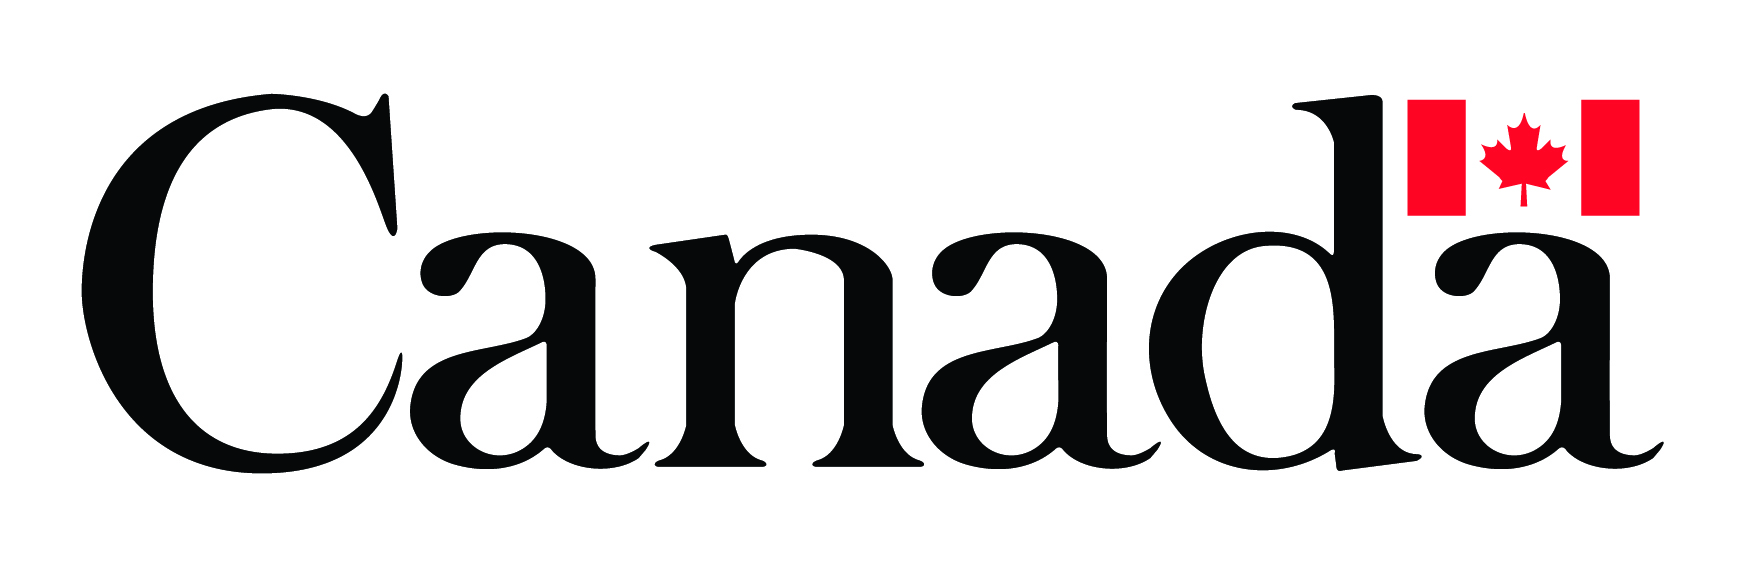 Government of Canada wordmark